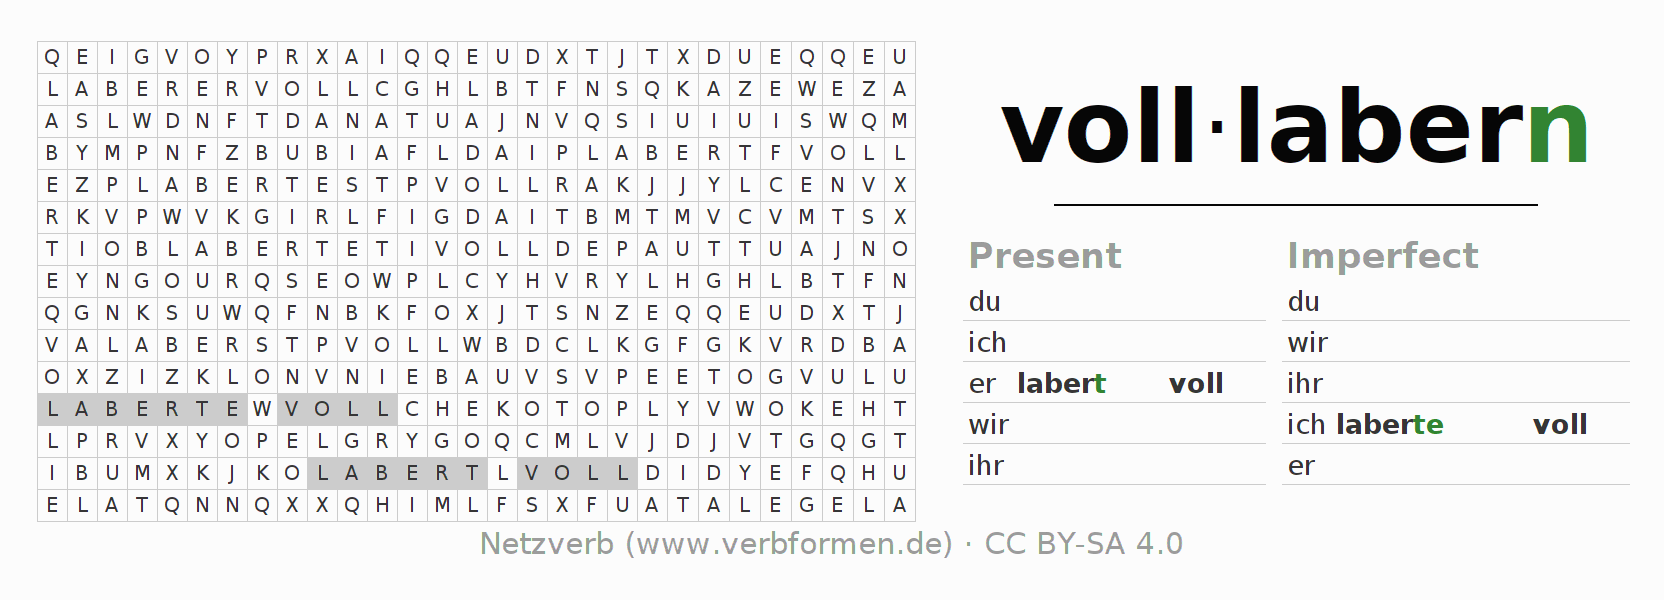 Word search puzzle for the conjugation of the verb volllabern